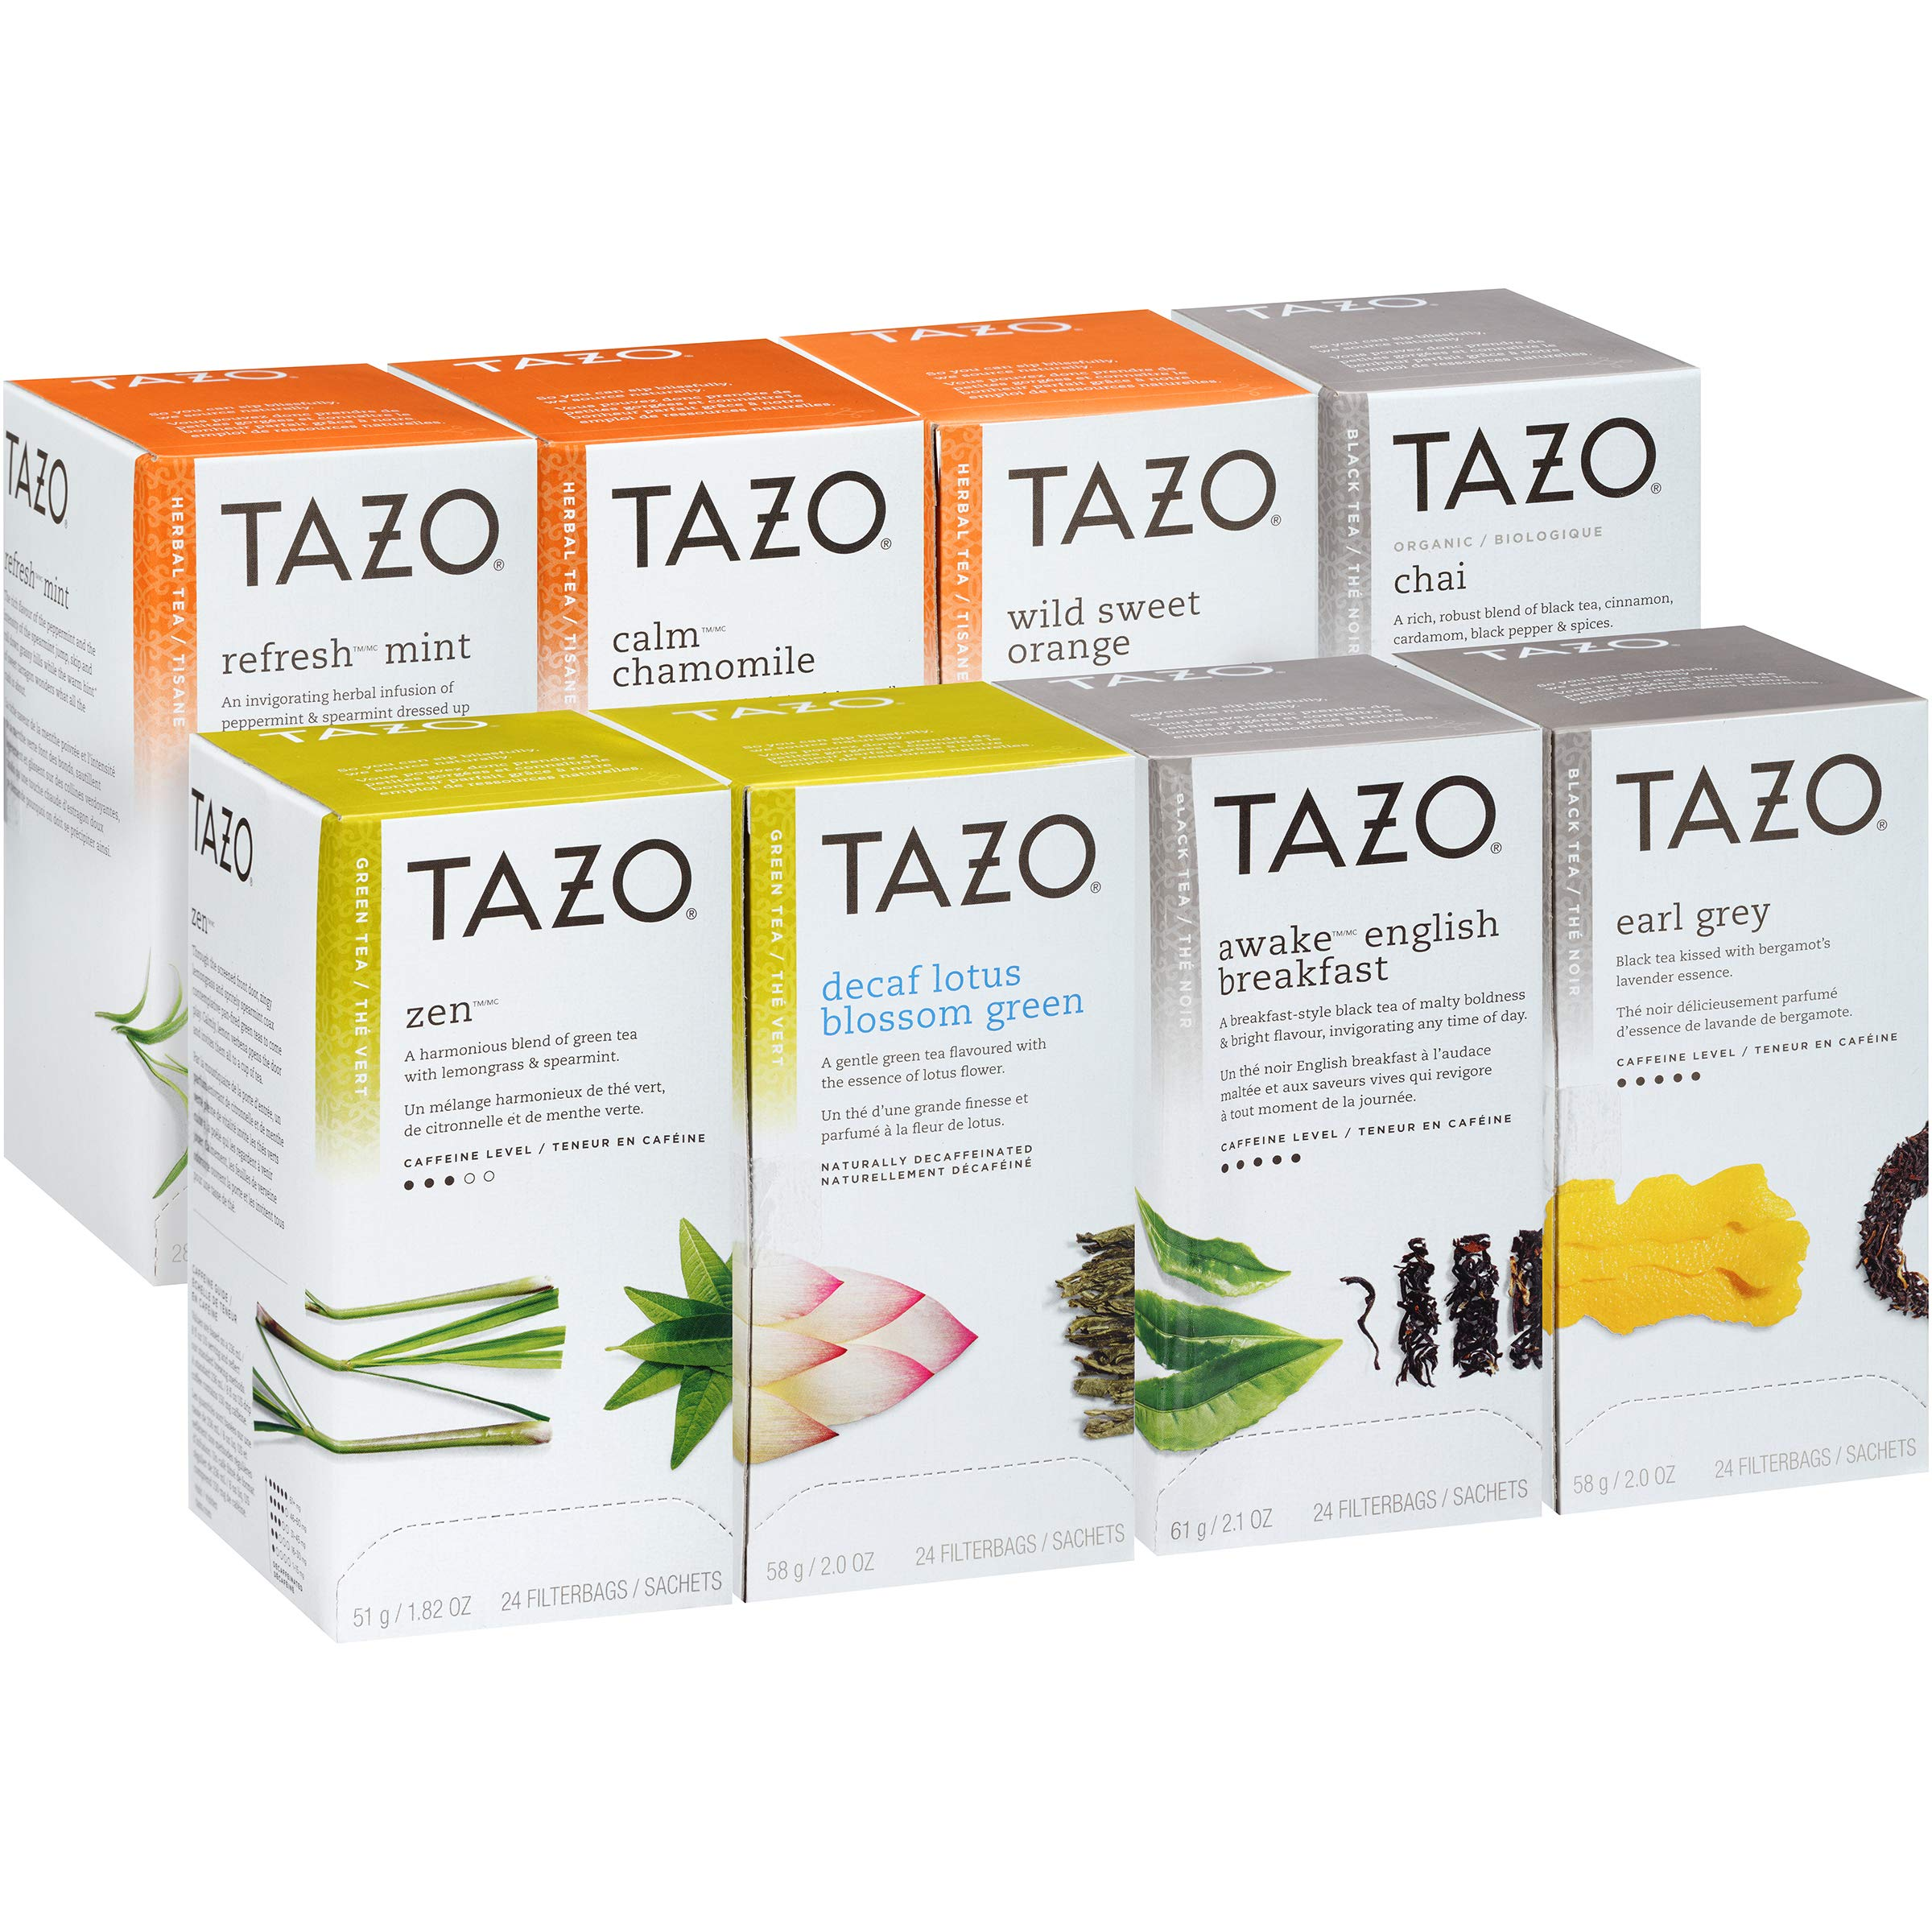 Tazo Black, Green and Herbal Assorted Variety Pack Enveloped Hot Tea Bags Non GMO, 24 count, Pack of 16 by Tazo